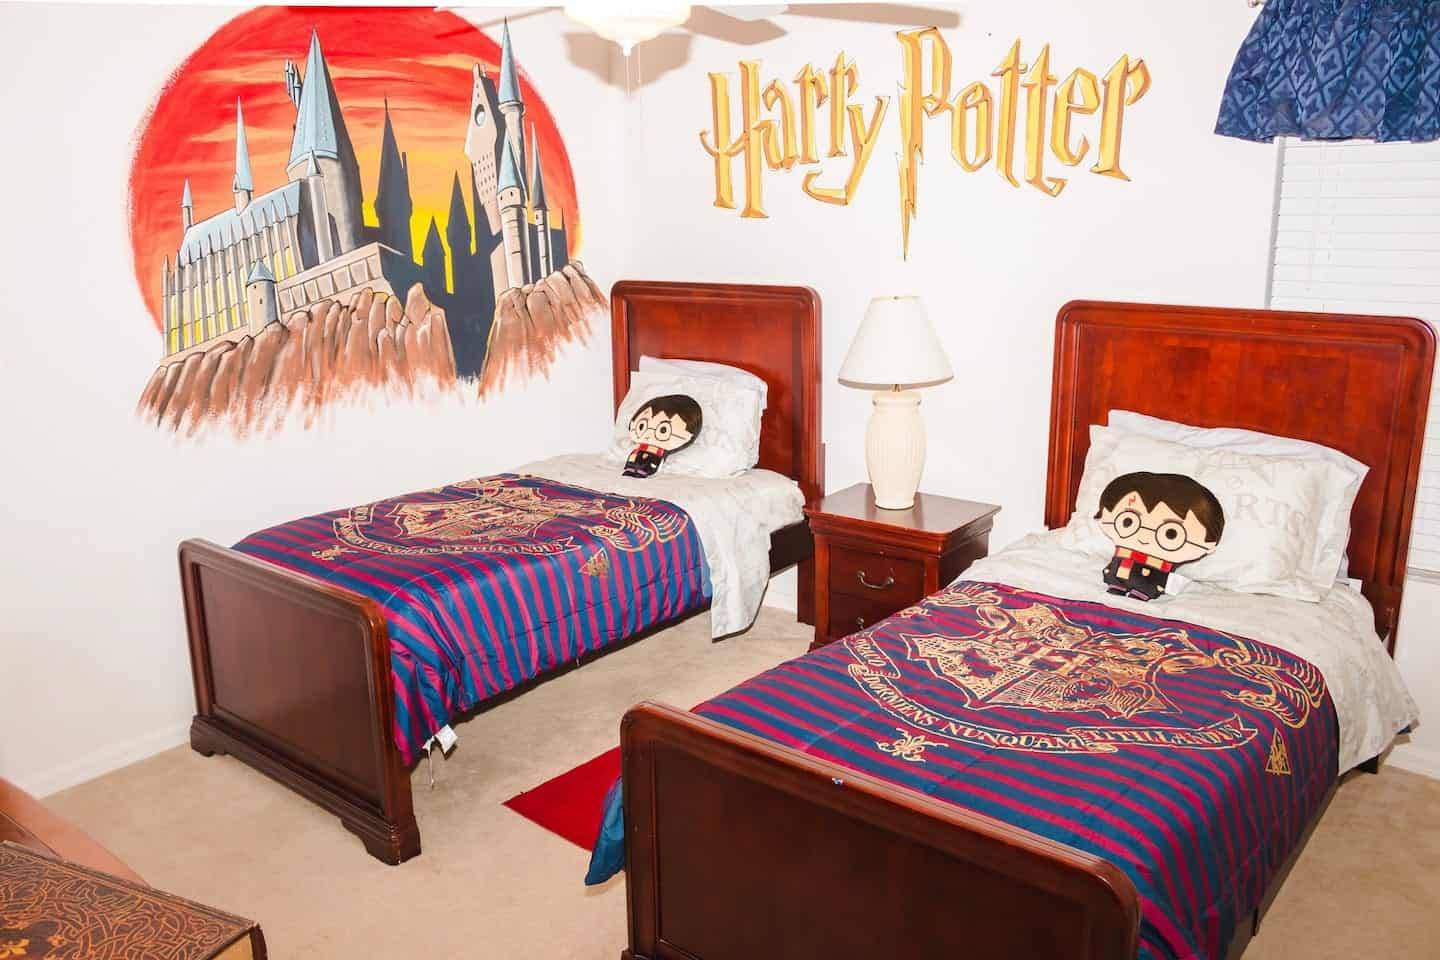 Image of Airbnb rental in Harry Potter